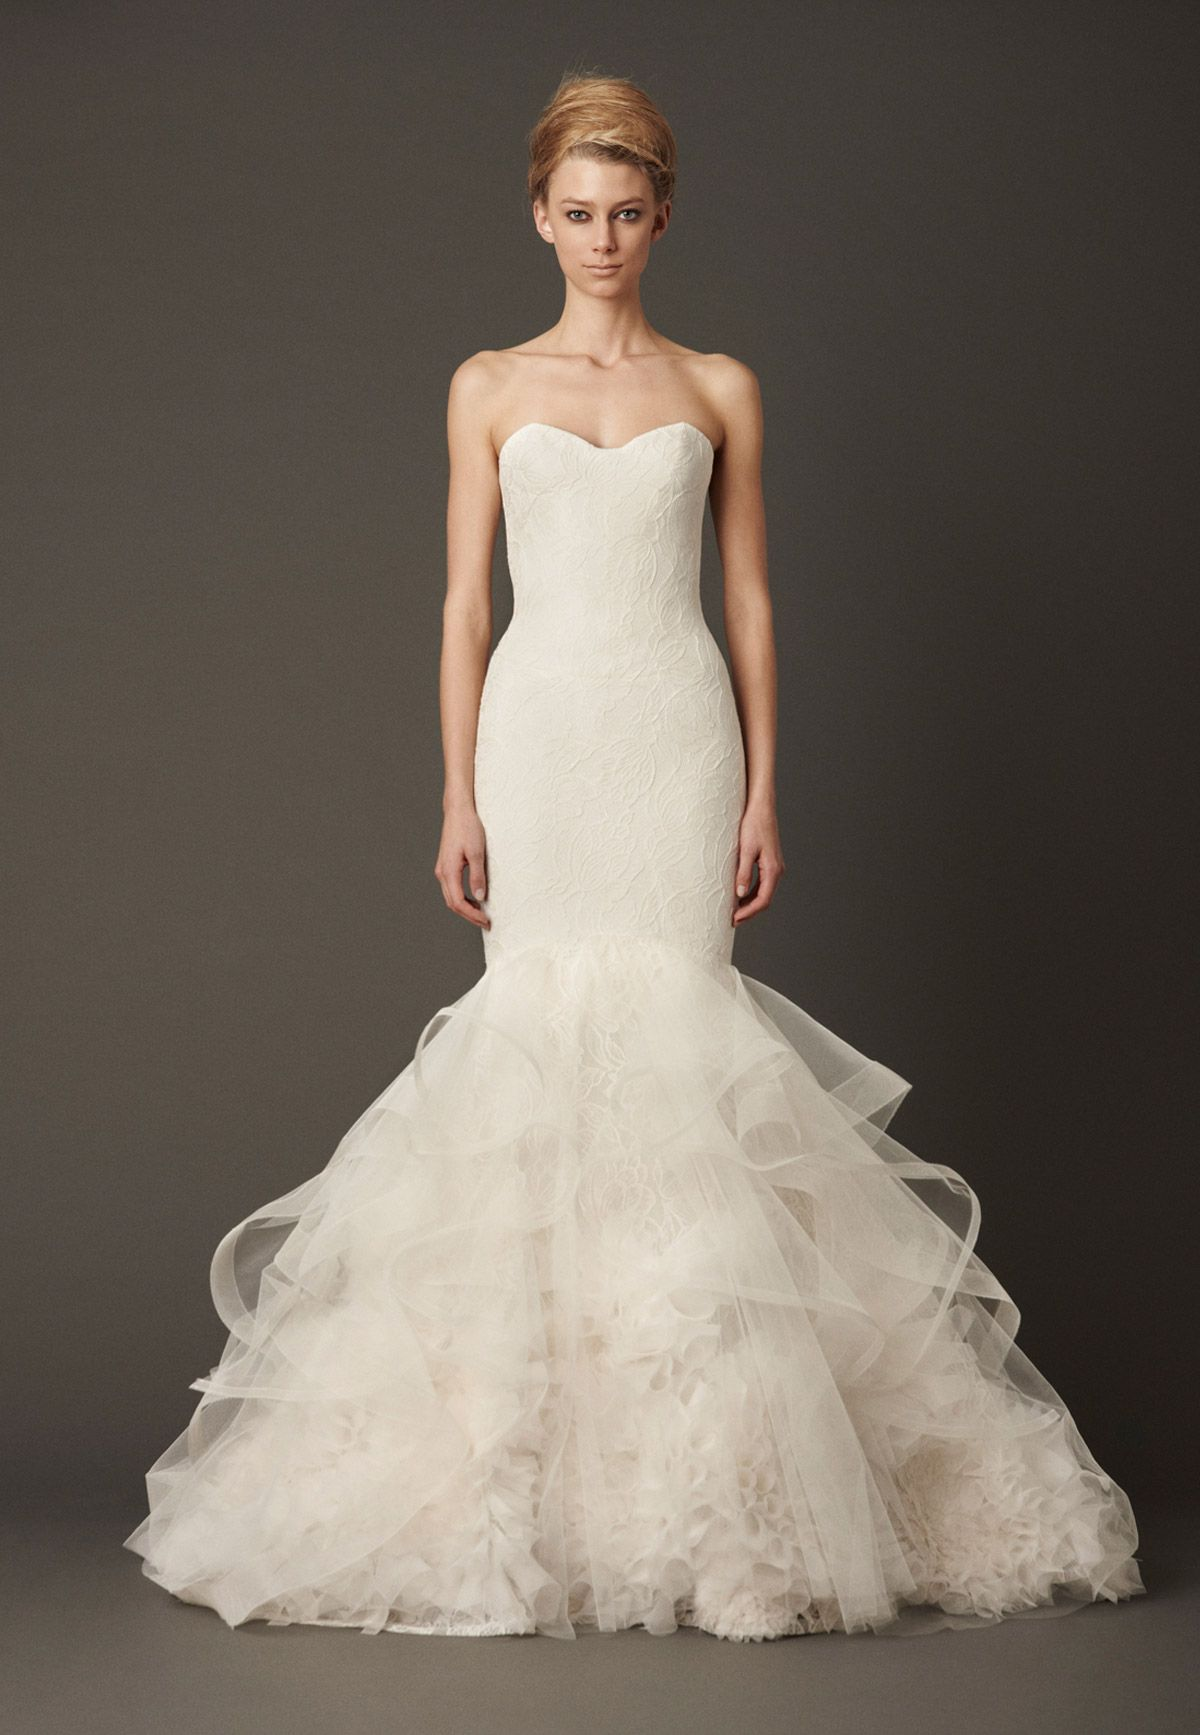 Used vera wang wedding dress  Mermaid with poofy bottom  Future planning  Pinterest  Vera wang